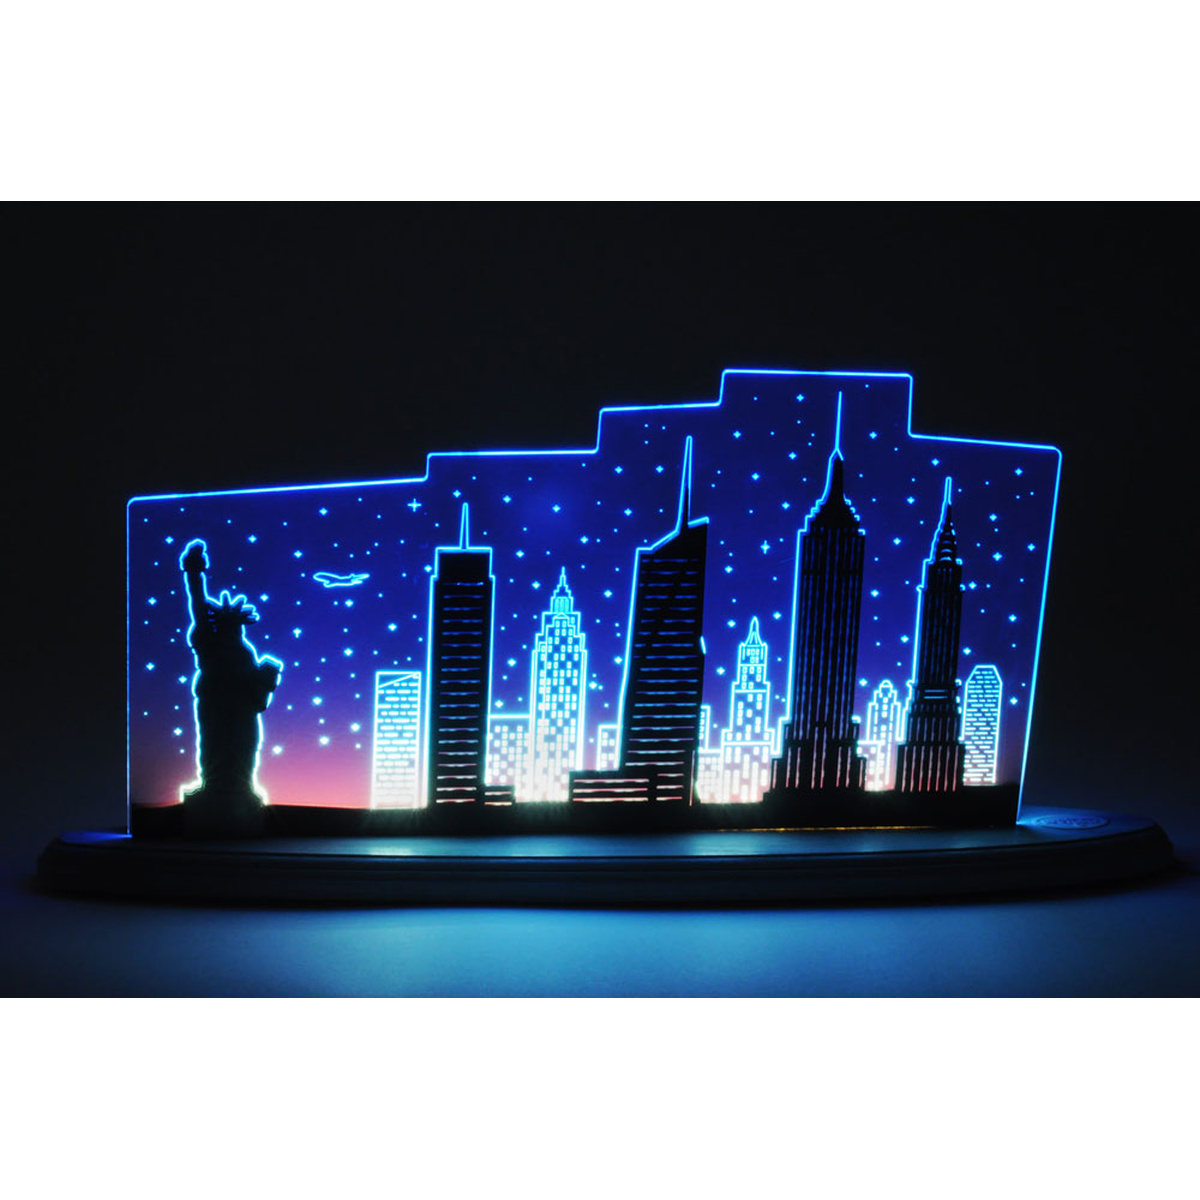 led motivleuchte 39 new york new york 39 von weigla f r 148 kaufen. Black Bedroom Furniture Sets. Home Design Ideas